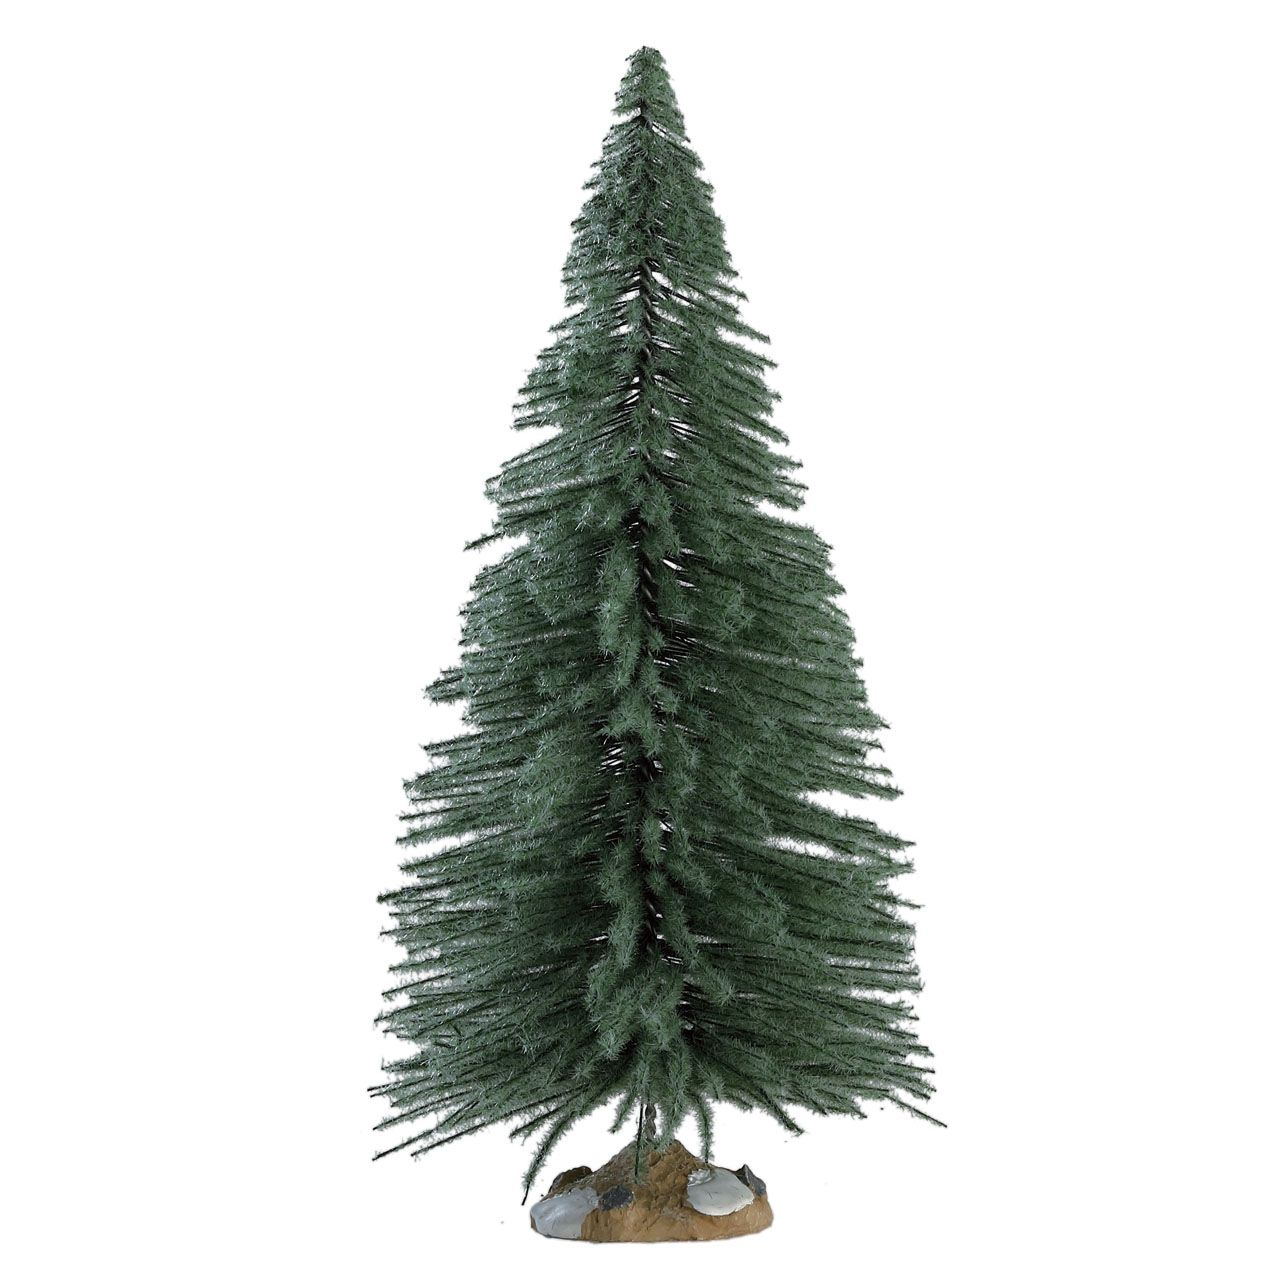 Lemax Spruce Tree Large Sku 74260 Released In 2017 As An Accessory For Lemax General Products Spruce Tree Lemax